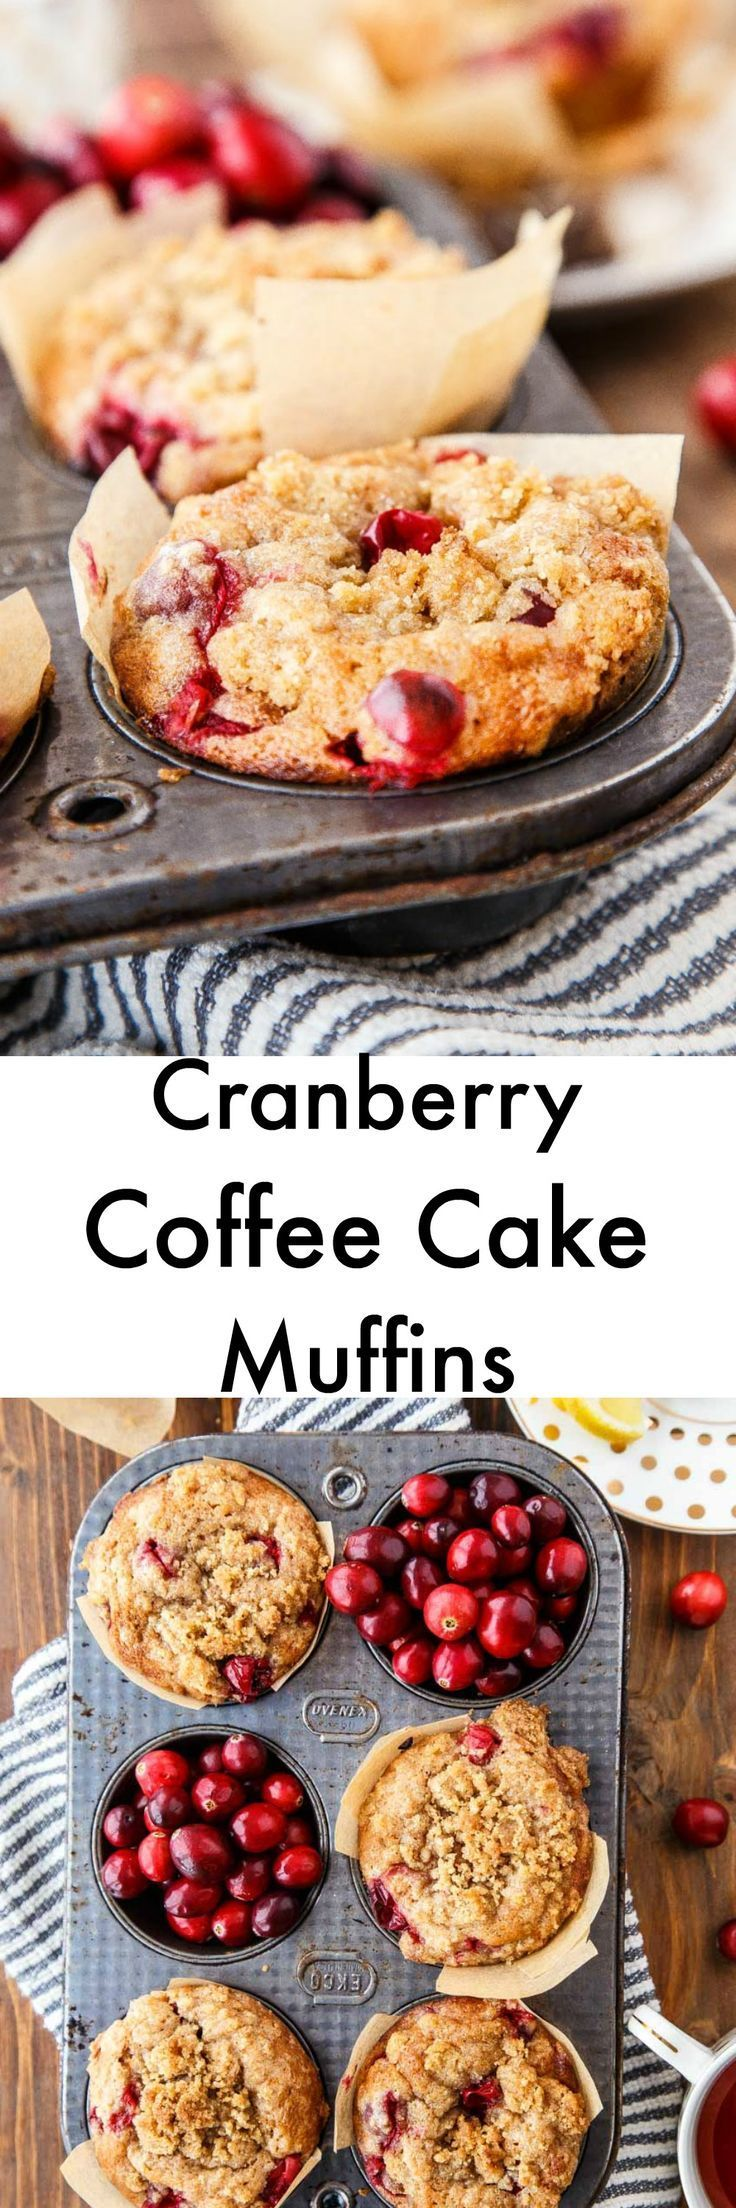 A small batch of rich coffee cake in muffin form. Add cranberries for tang, or sub blueberries. Makes 5 muffins.